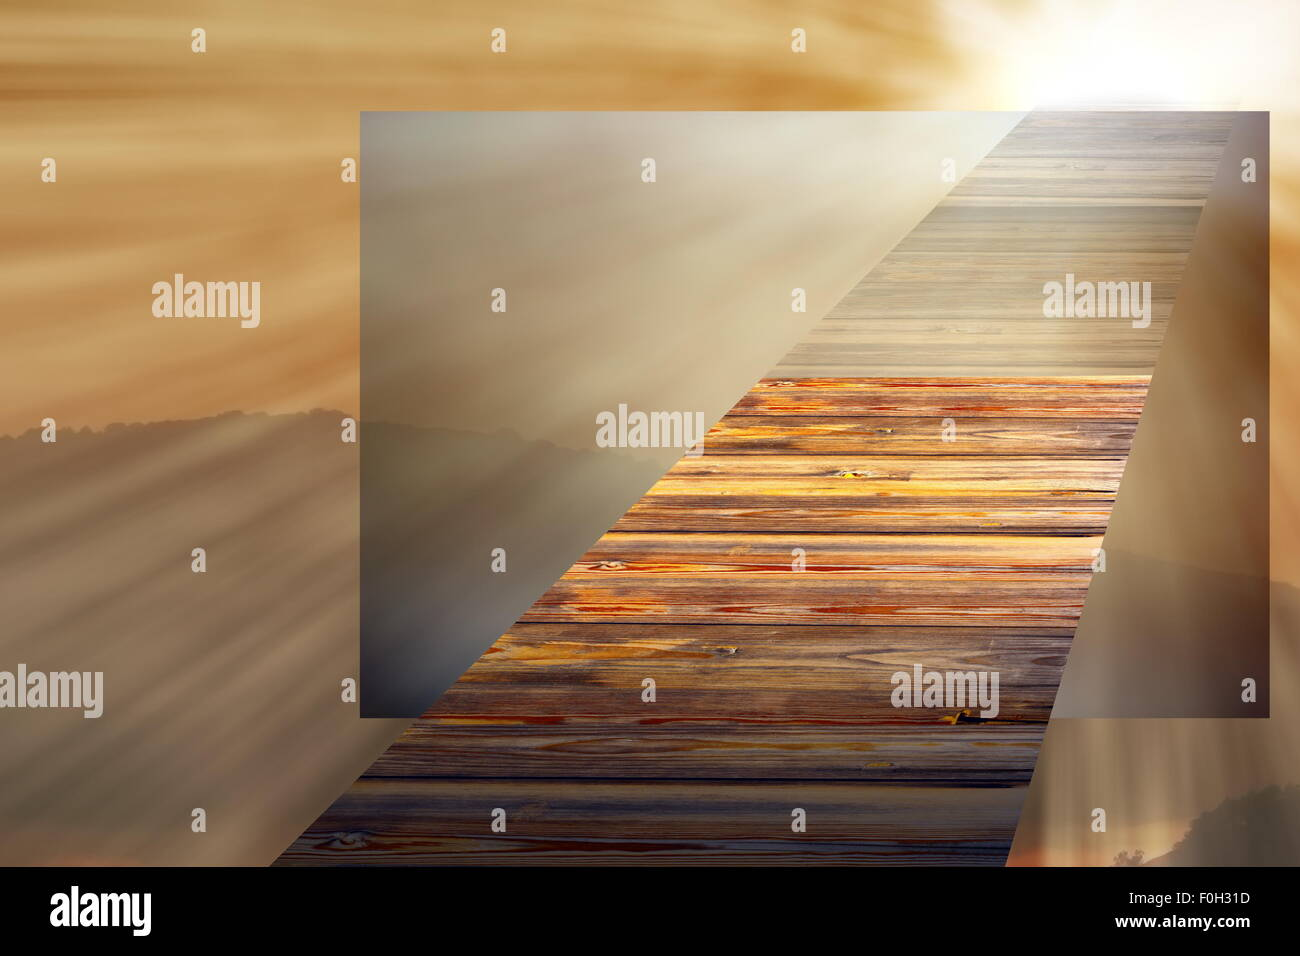 concept with wooden bridge going towards the light in the sky , entering a parallel world - Stock Image